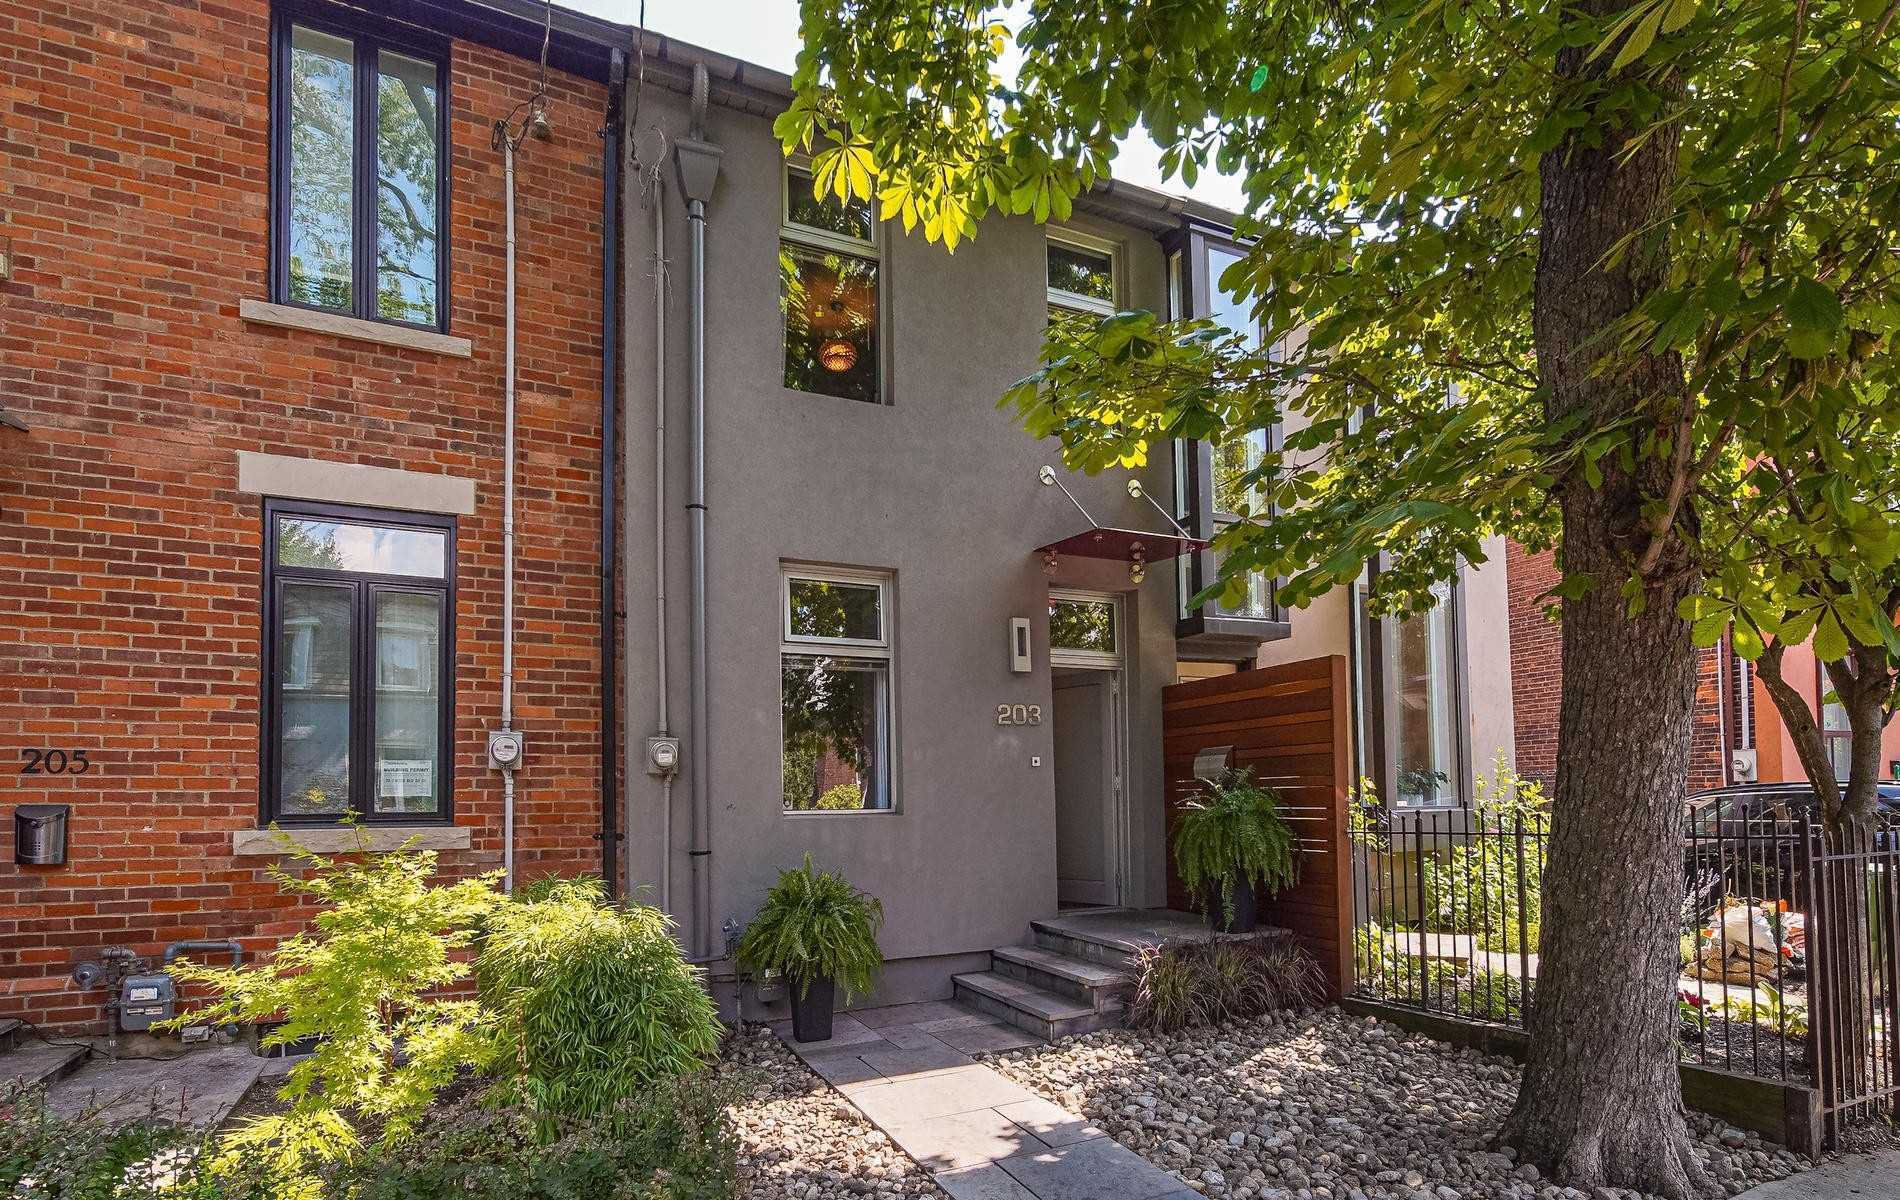 Main Photo: 203 Hamilton Street in Toronto: South Riverdale House (3-Storey) for sale (Toronto E01)  : MLS®# E4922245